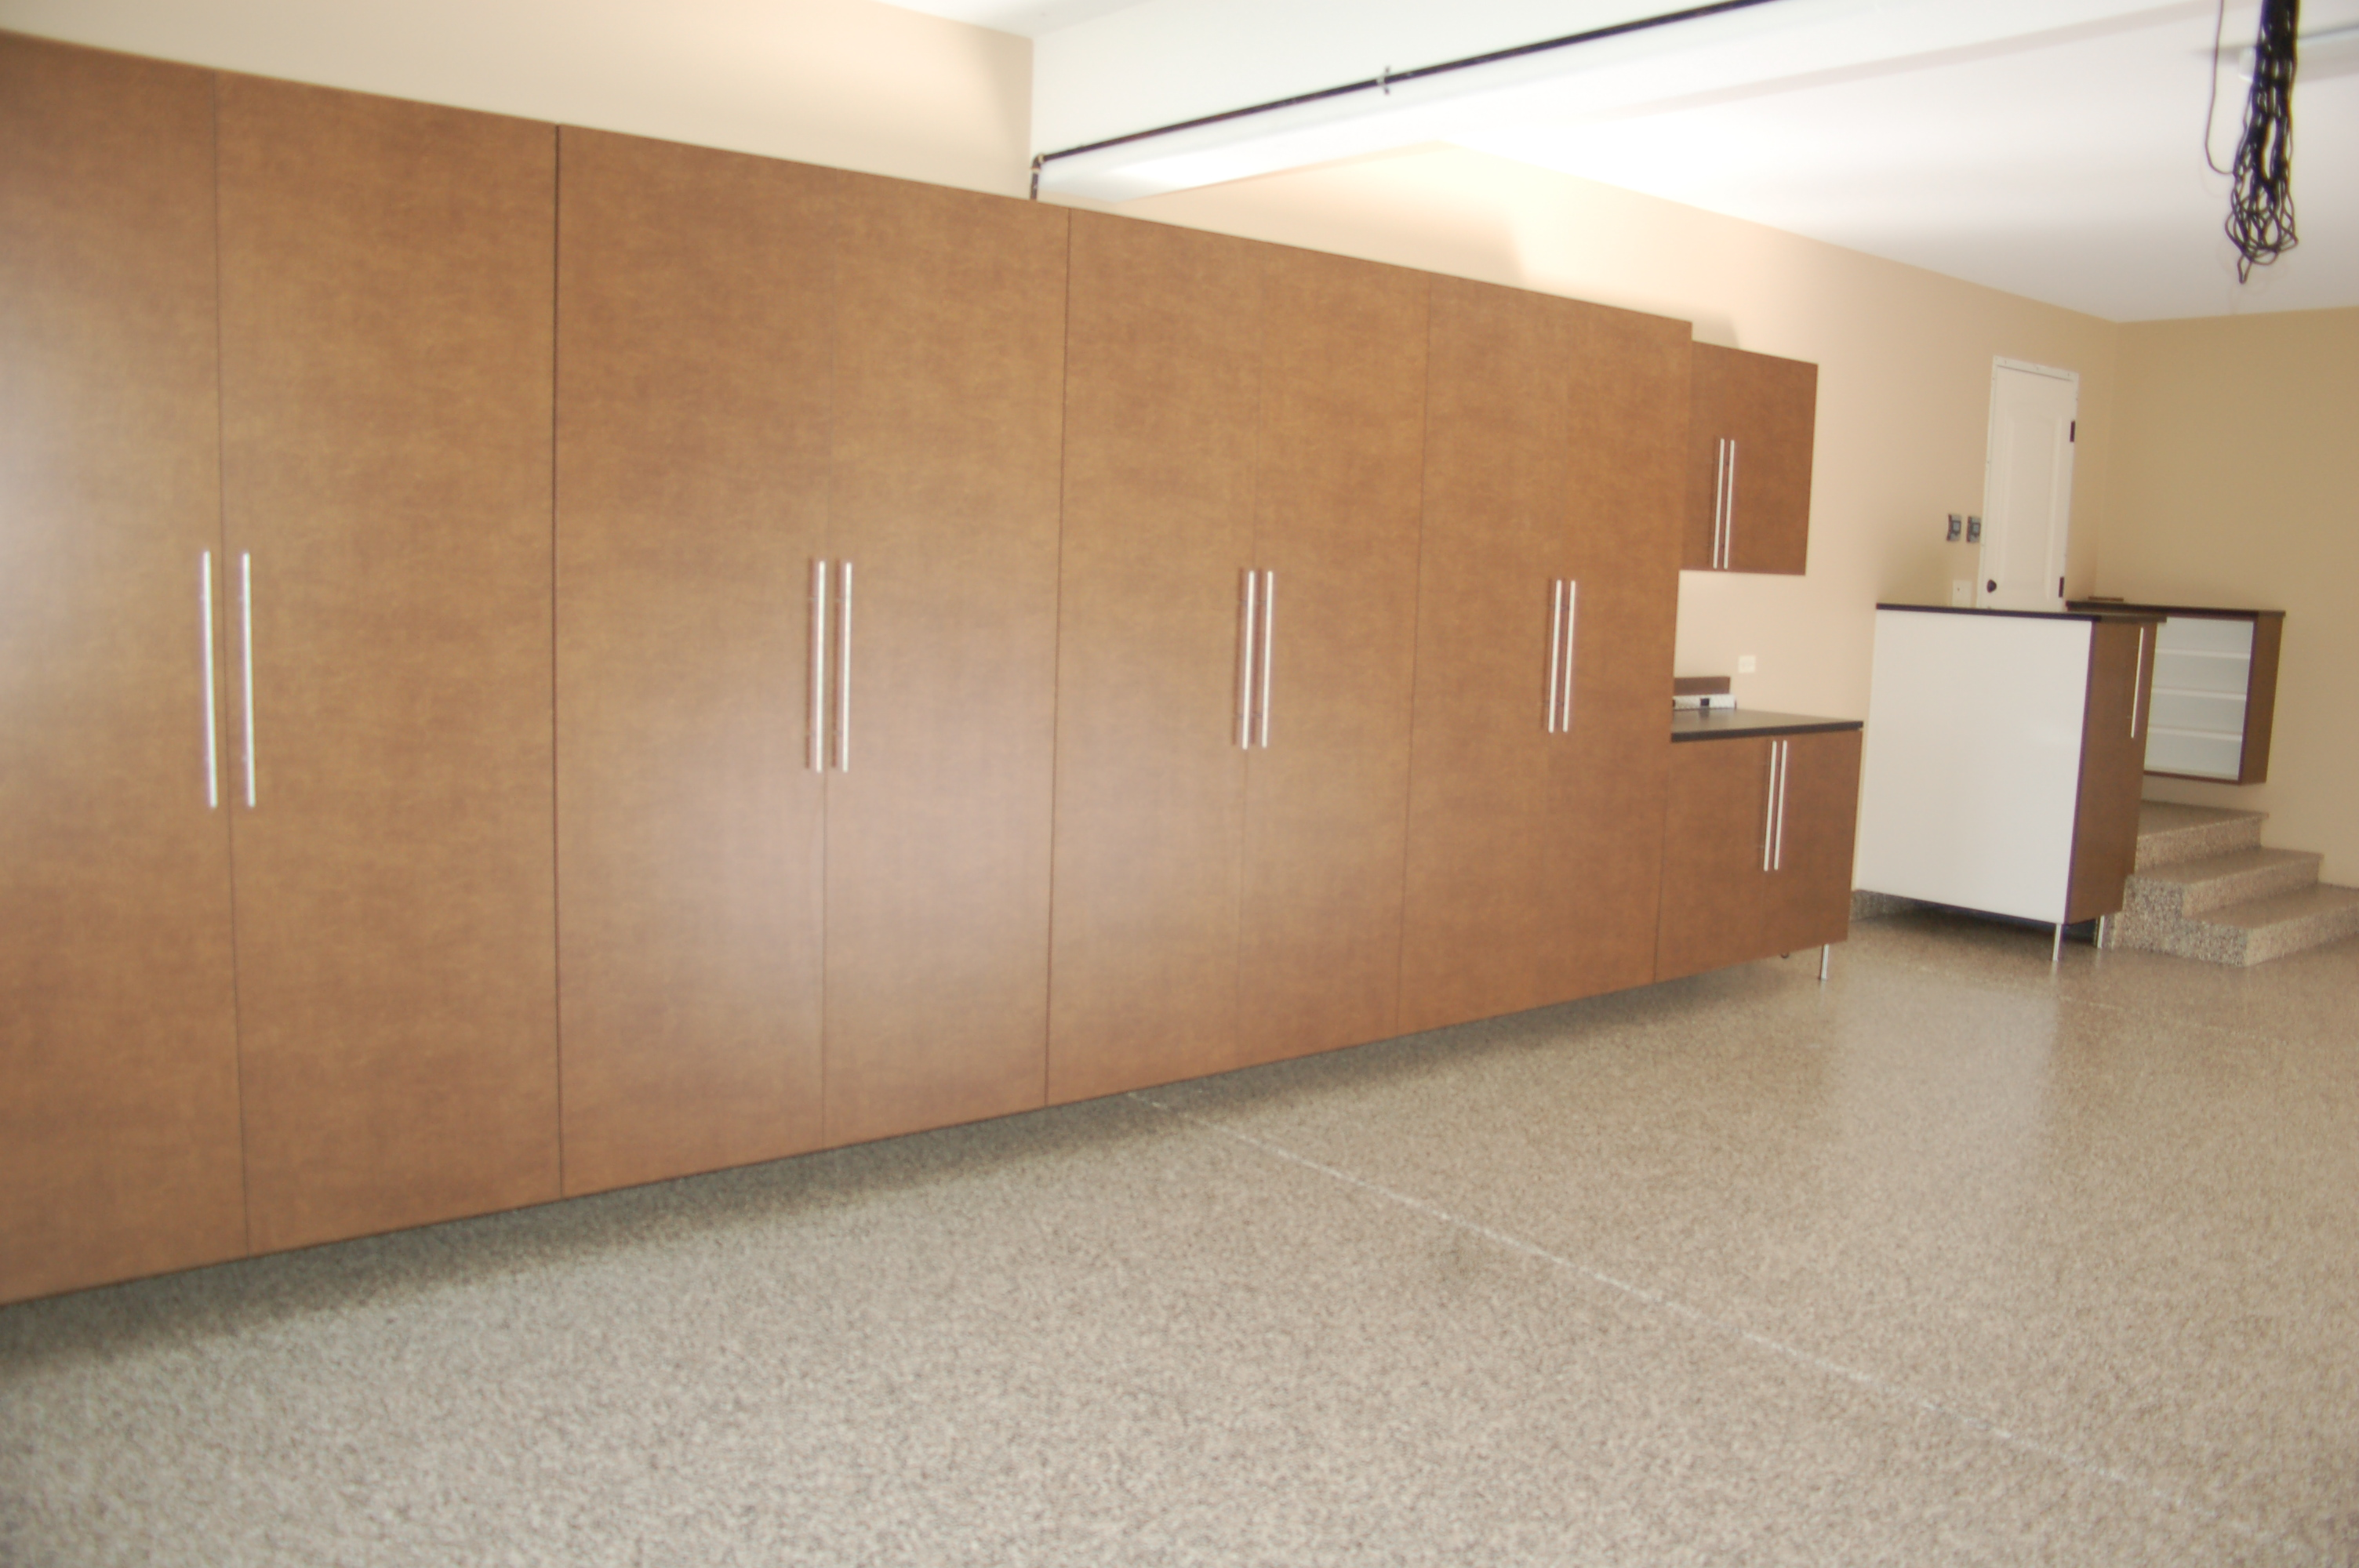 Copper Blaze Garage Cabinets 10